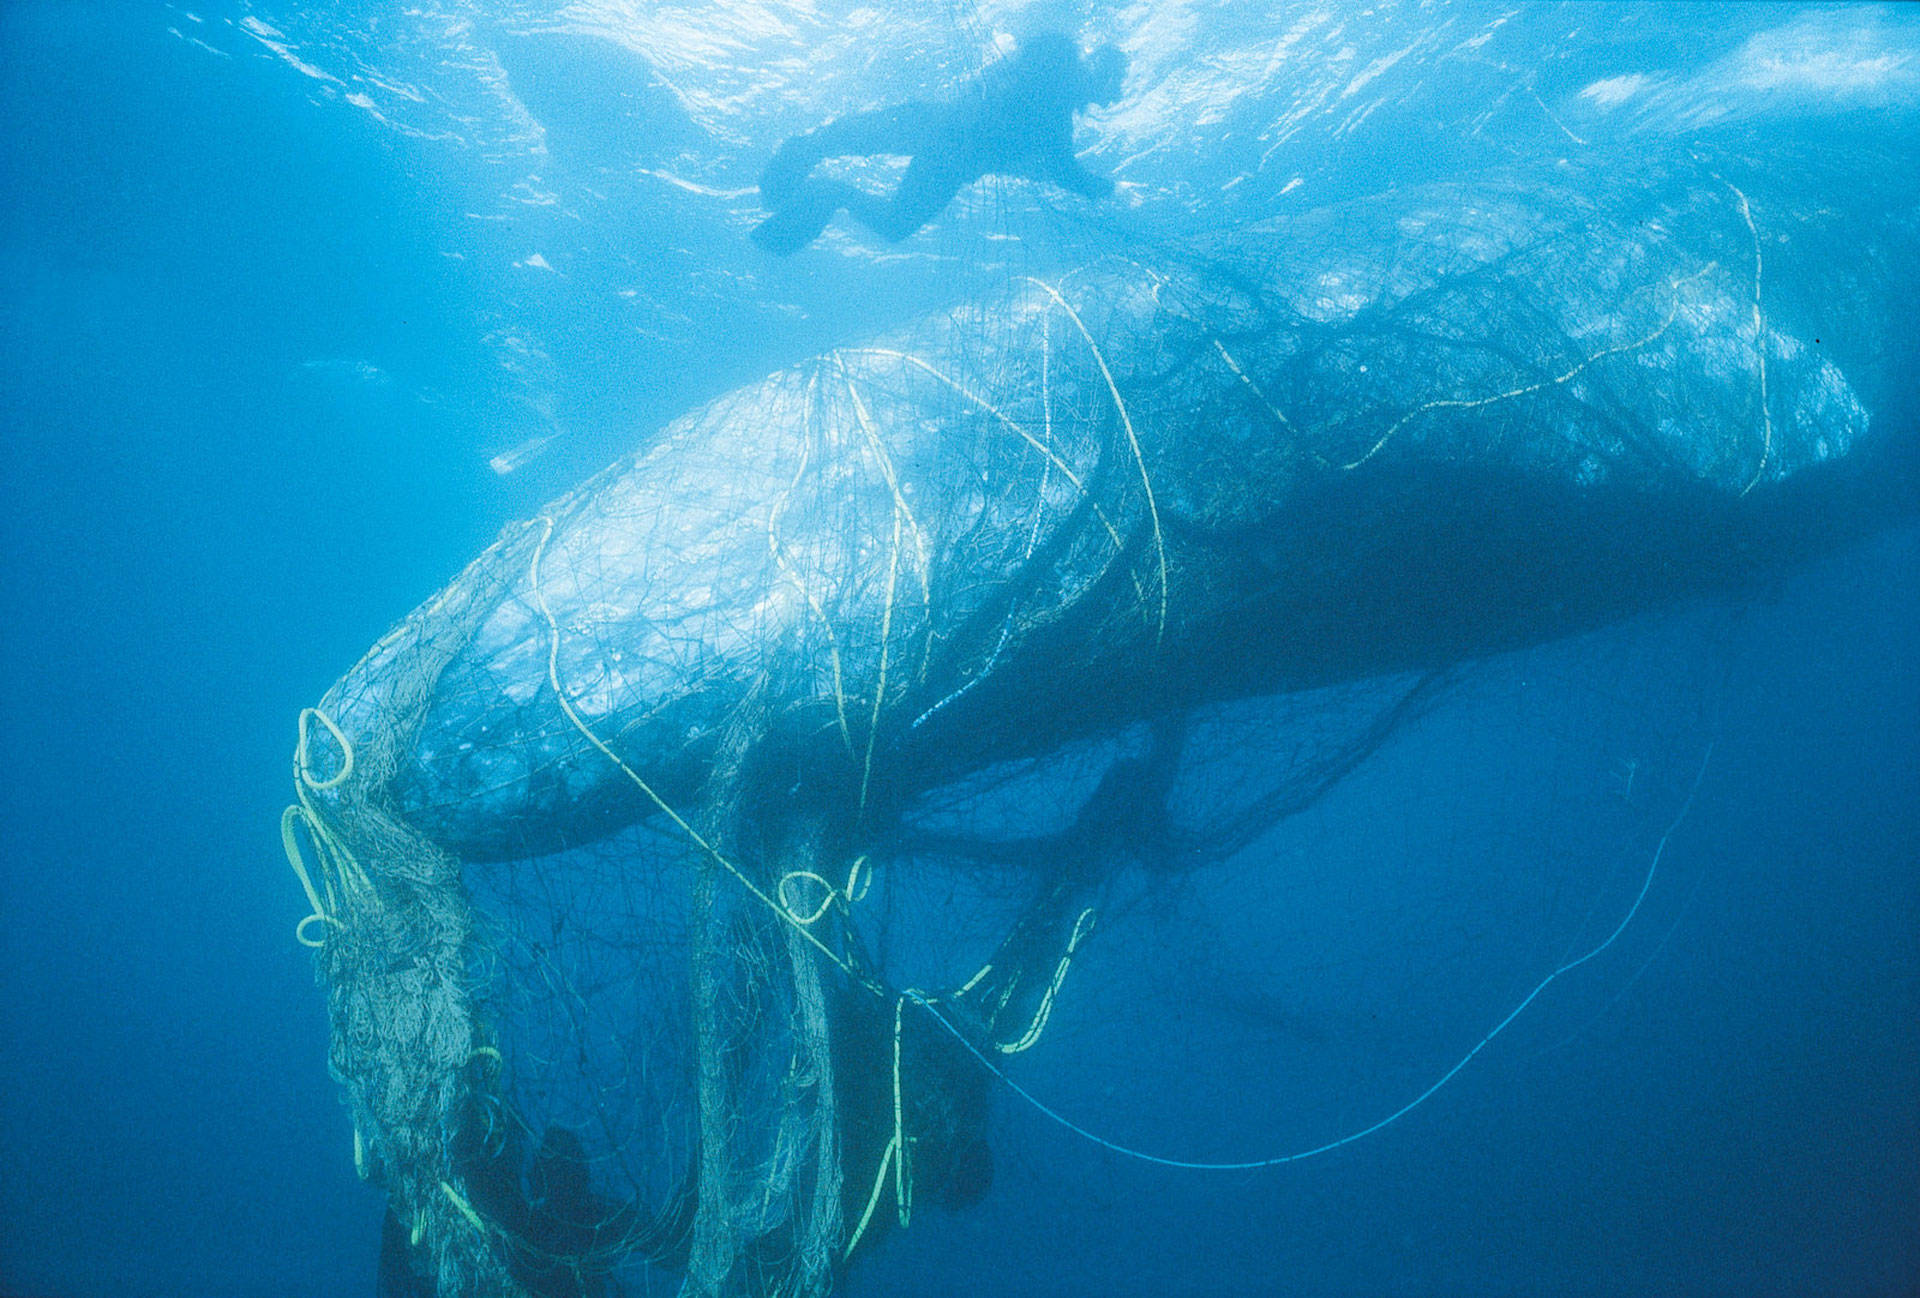 Rescuers untangle a gray whale from ghost net off the coast of California. Bob Talbot/Marine Photobank/Courtesy of World Animal Protection